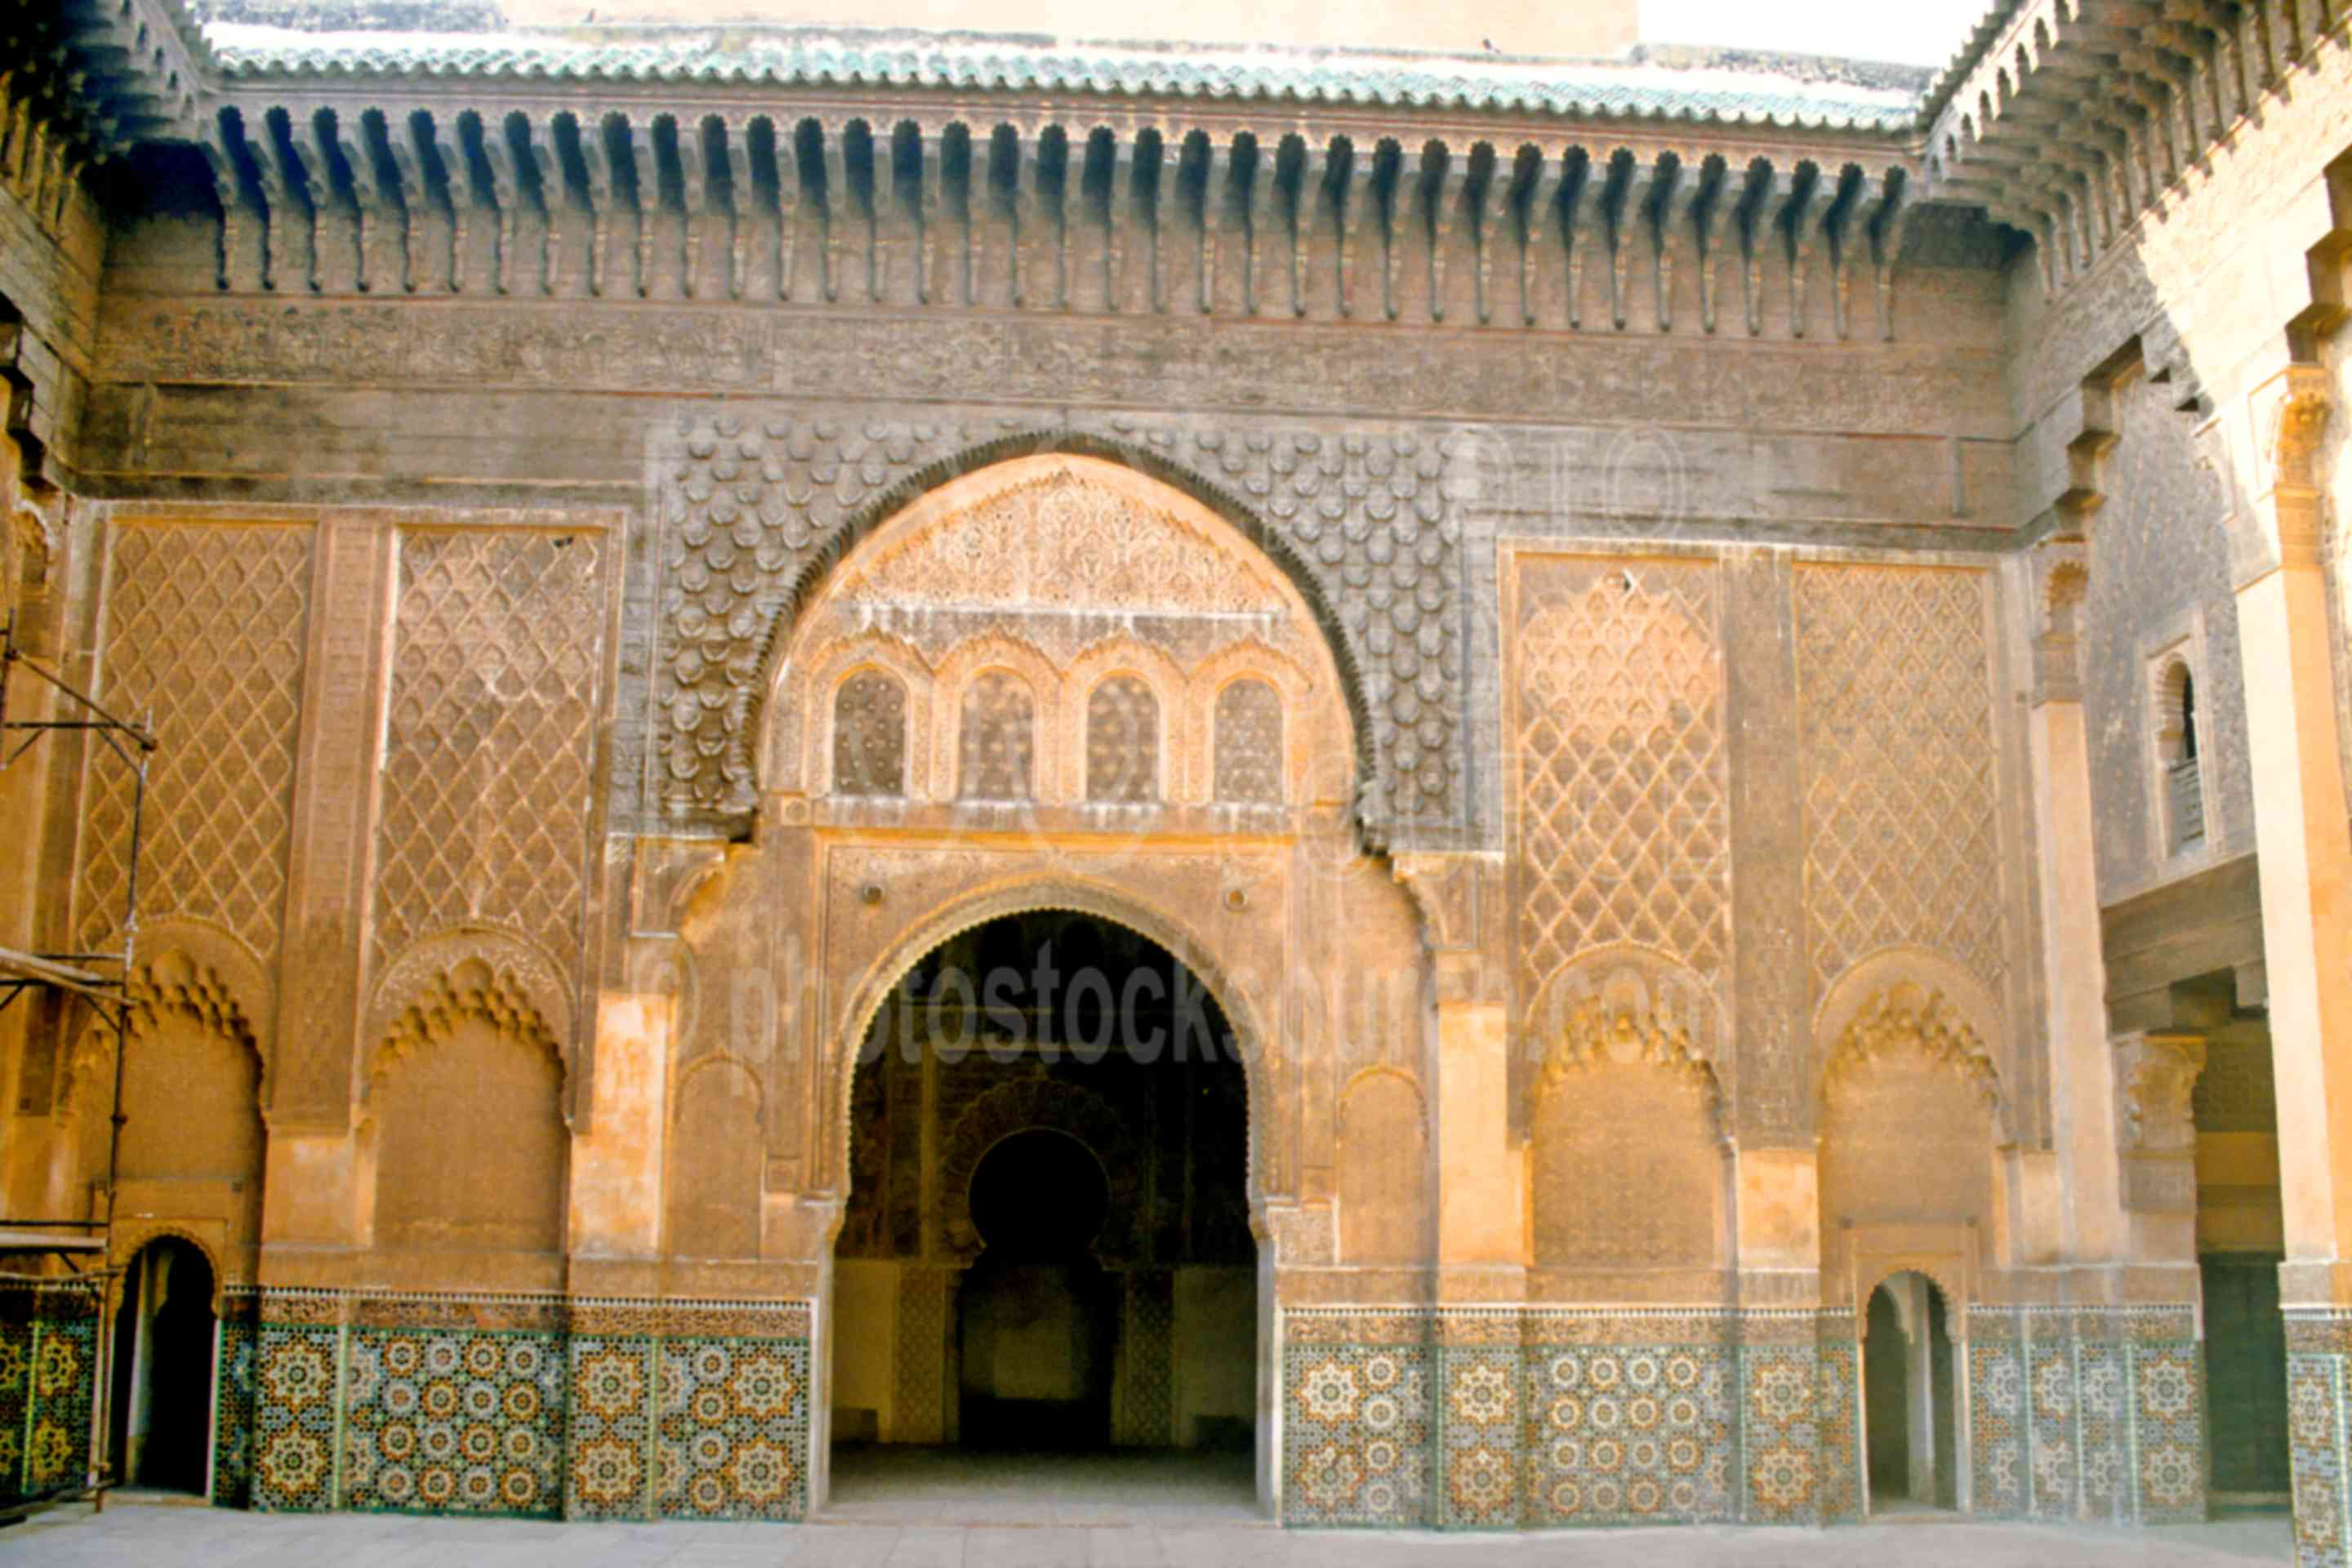 Ben Youseff Koran School,arch,decoration,door,school,morocco mosques